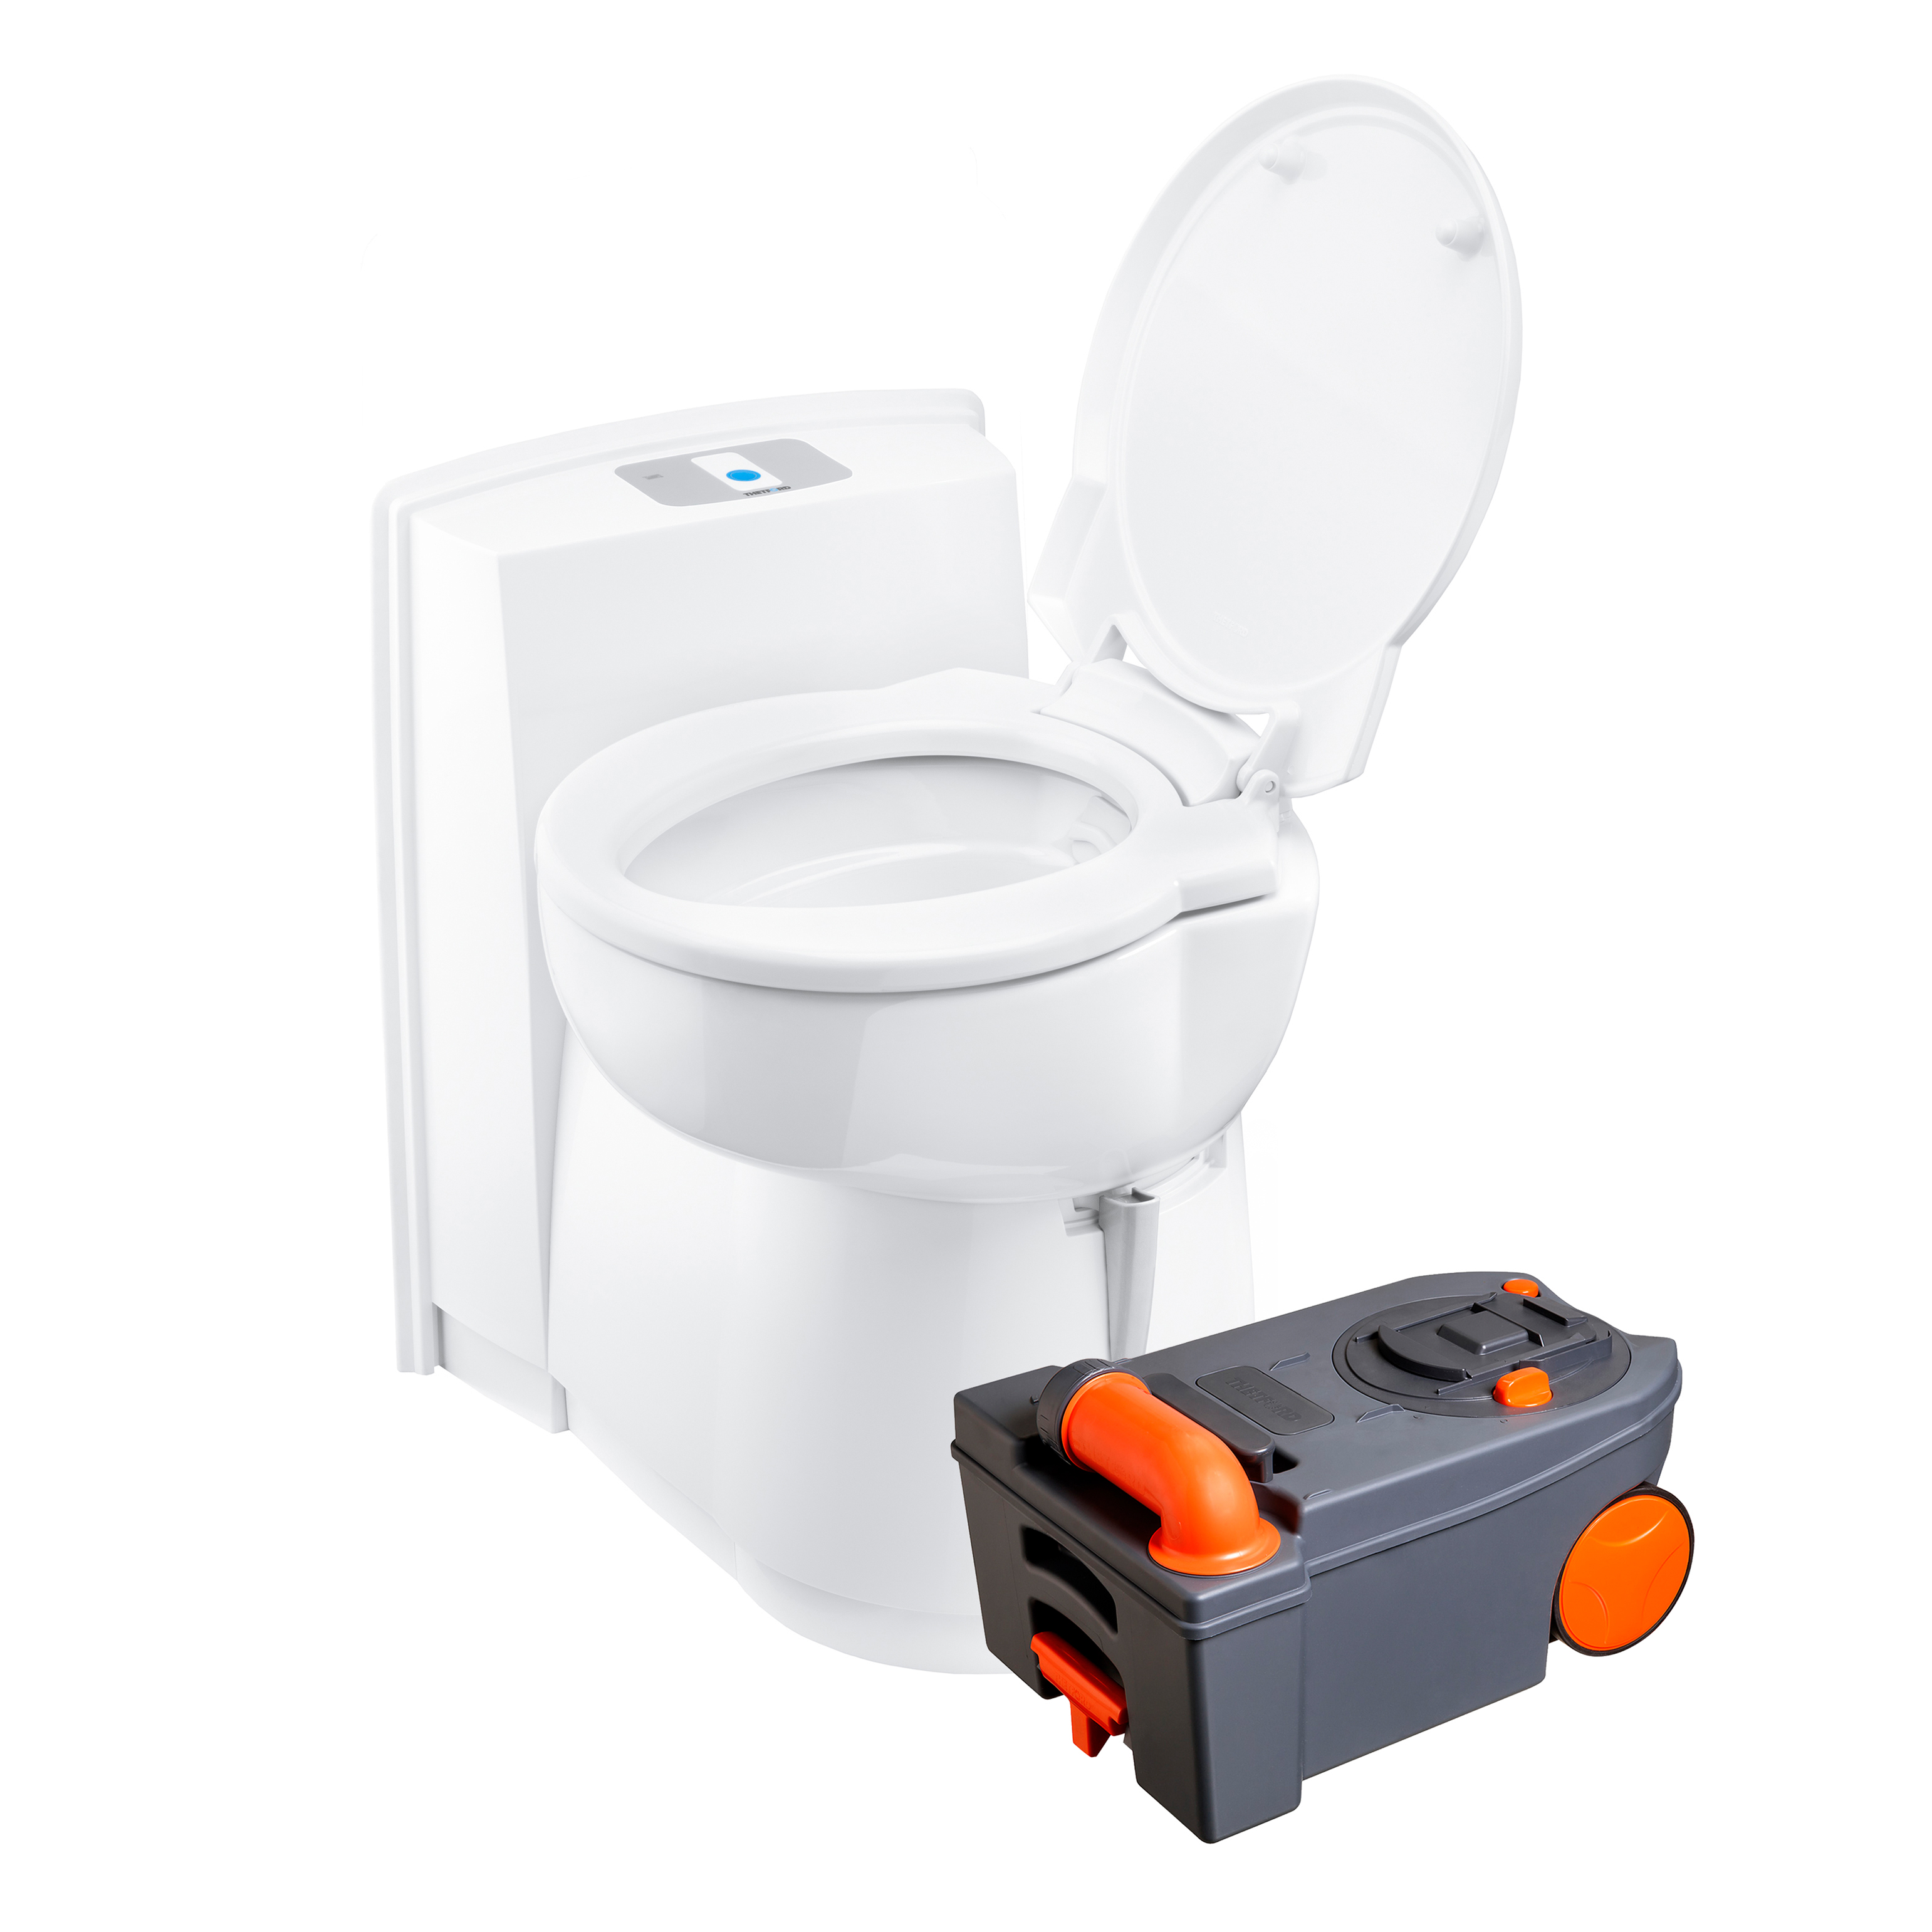 Cassette Toilets Thetford Toilet Parts Breakdown Together With Rv Diagram C263 Csl Ceramic C260 Serie The Built In Consists Of Two